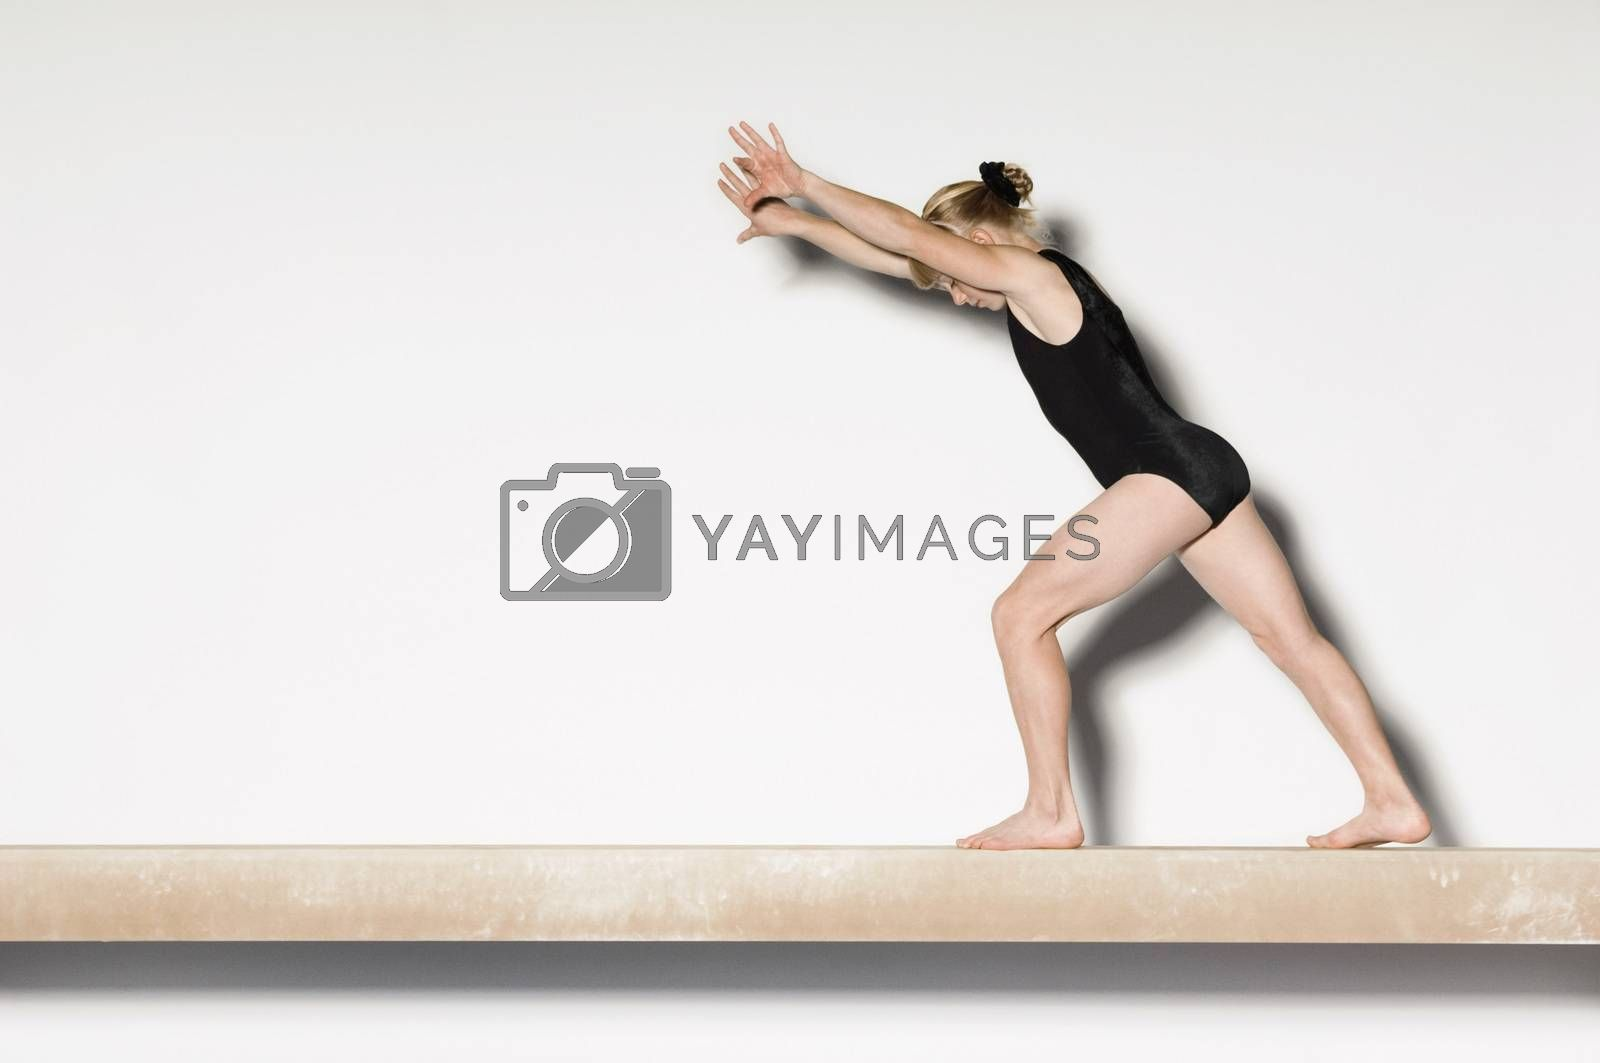 Royalty free image of Gymnast(13-15)  on balance beam preparing to do handstand side view by moodboard